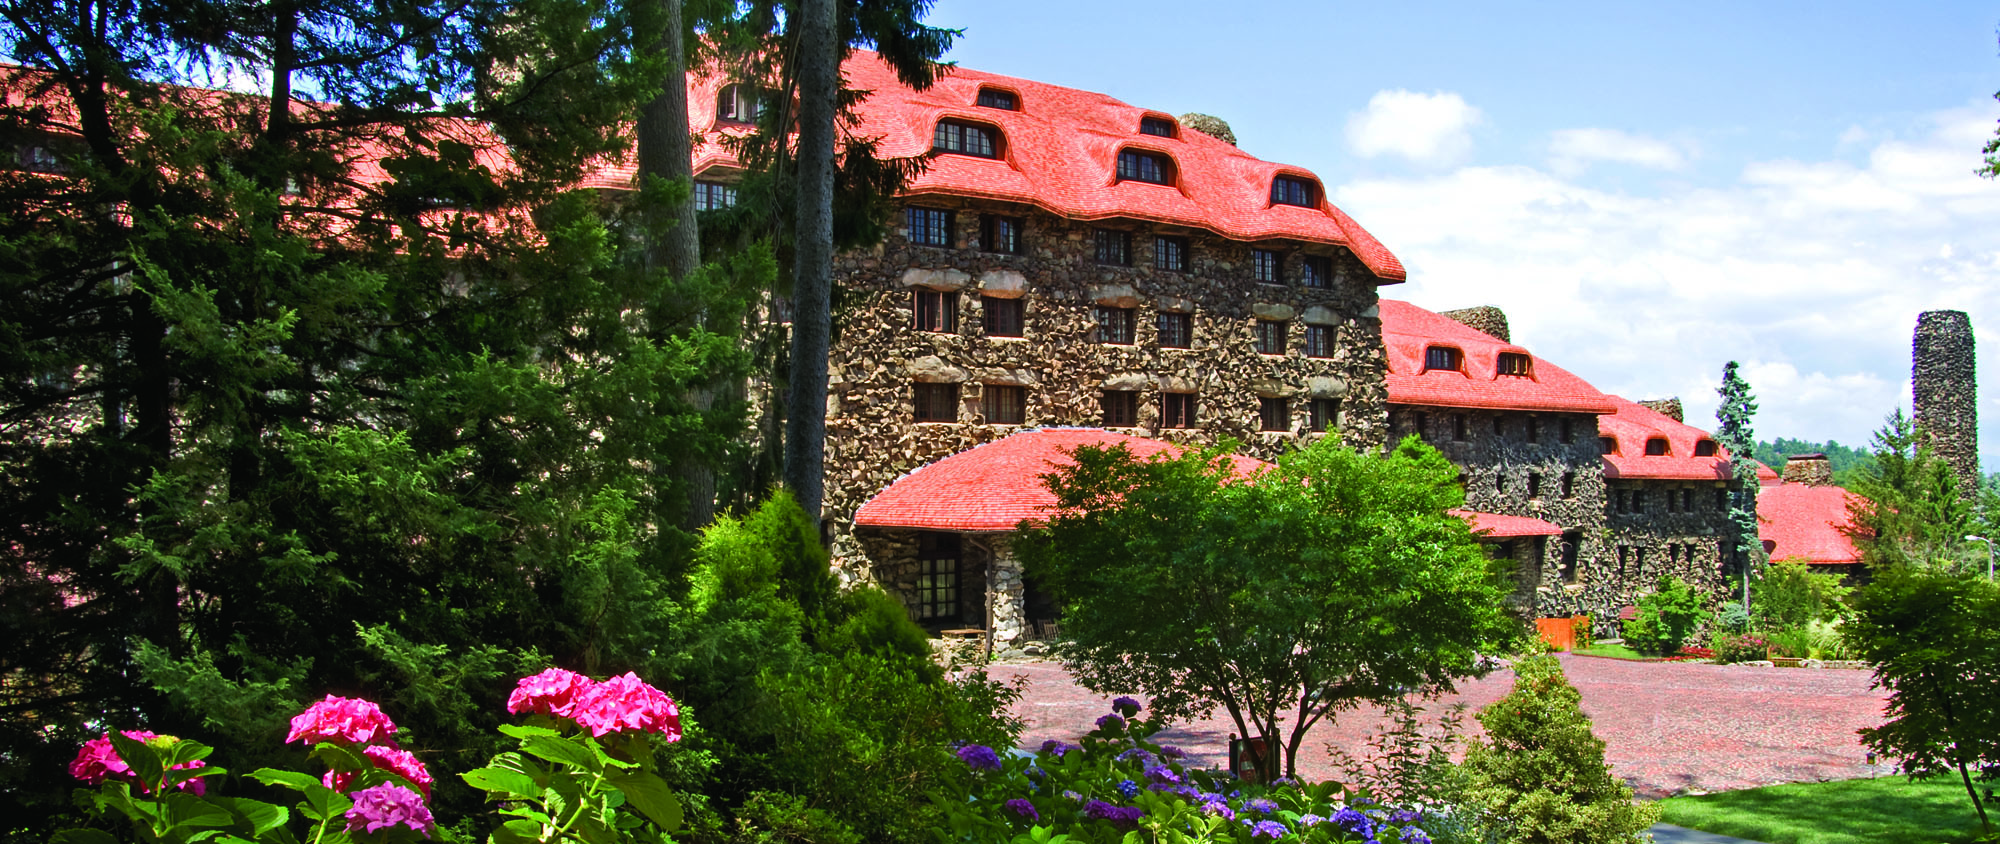 The historic courtyard facade of the Omni Grove Park Inn, built in 1913 in an Arts & Crafts Rustic style, welcomes guests.